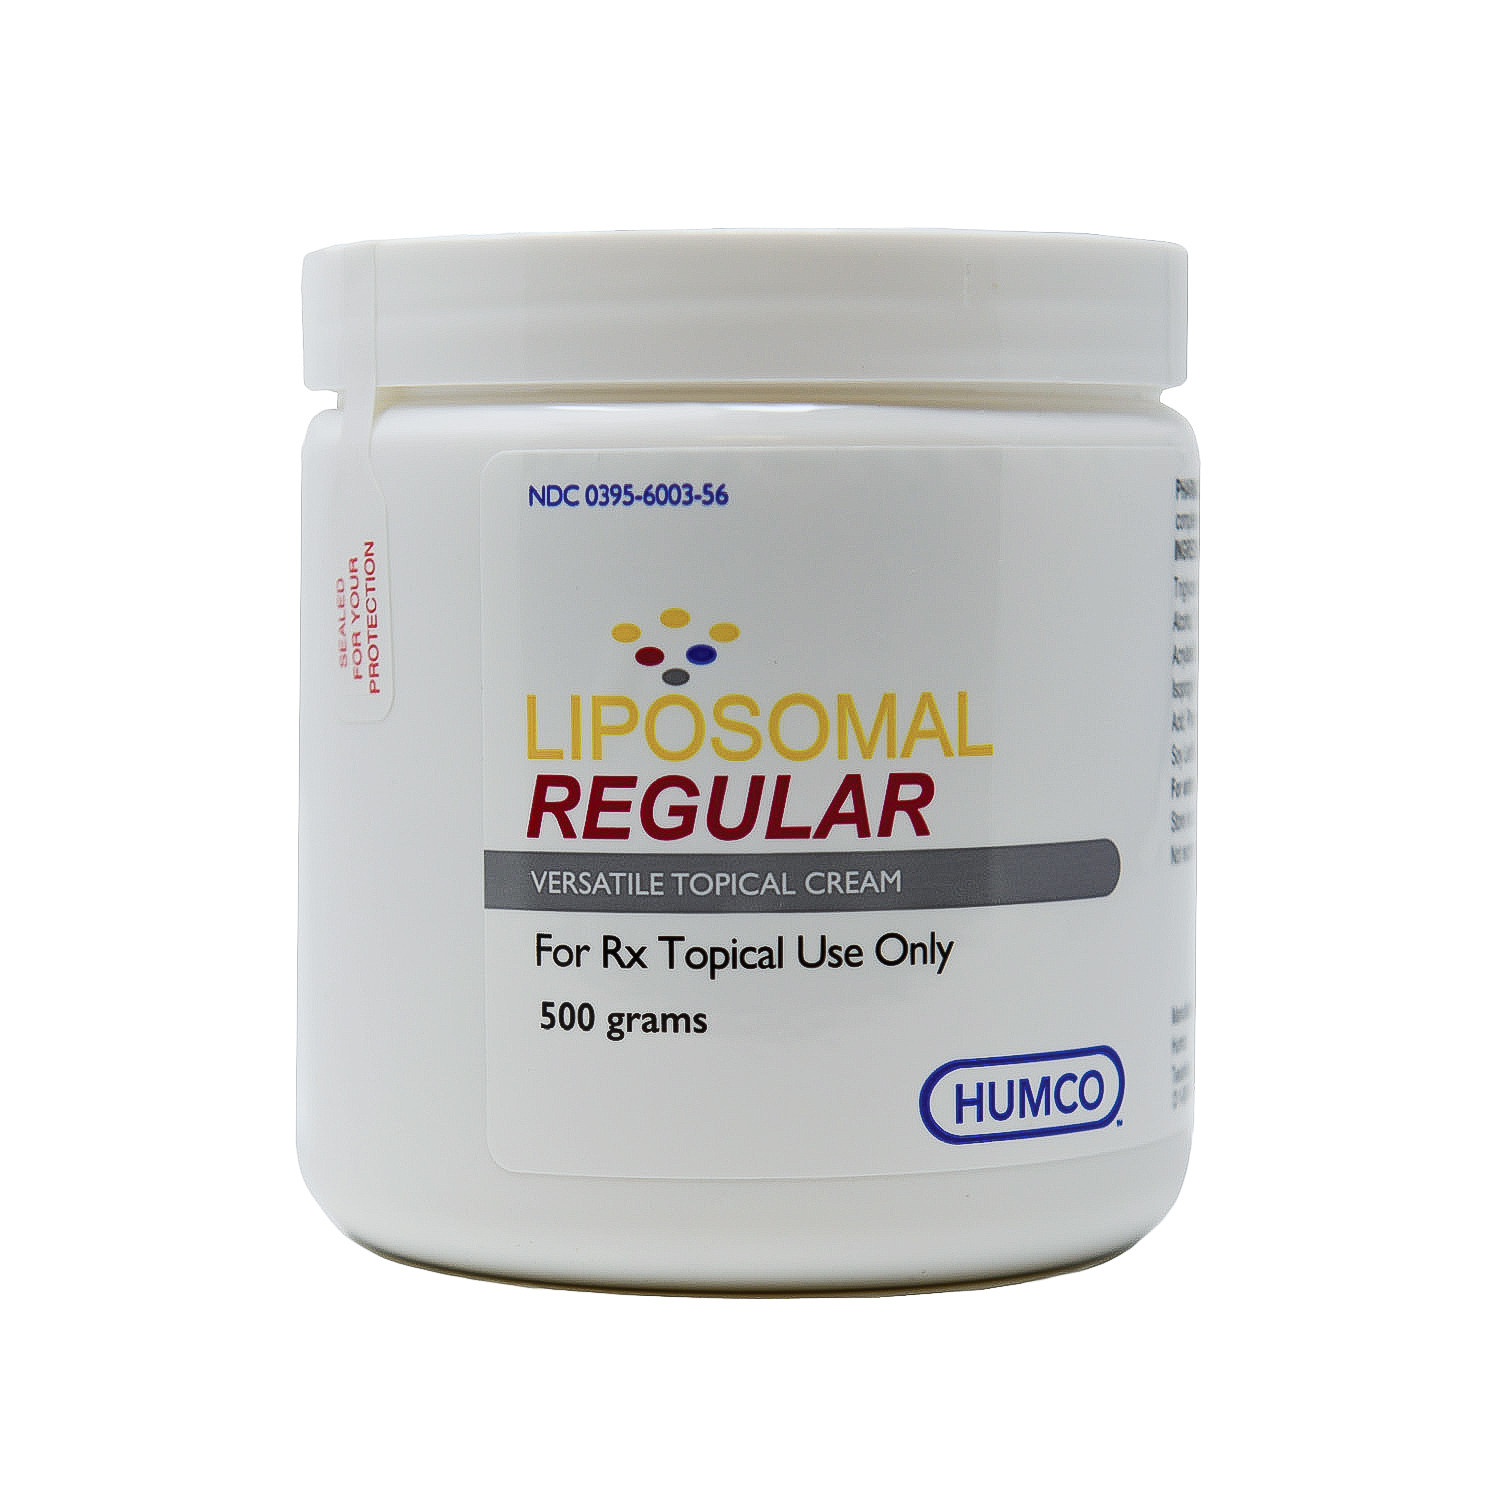 Liposomal Regular